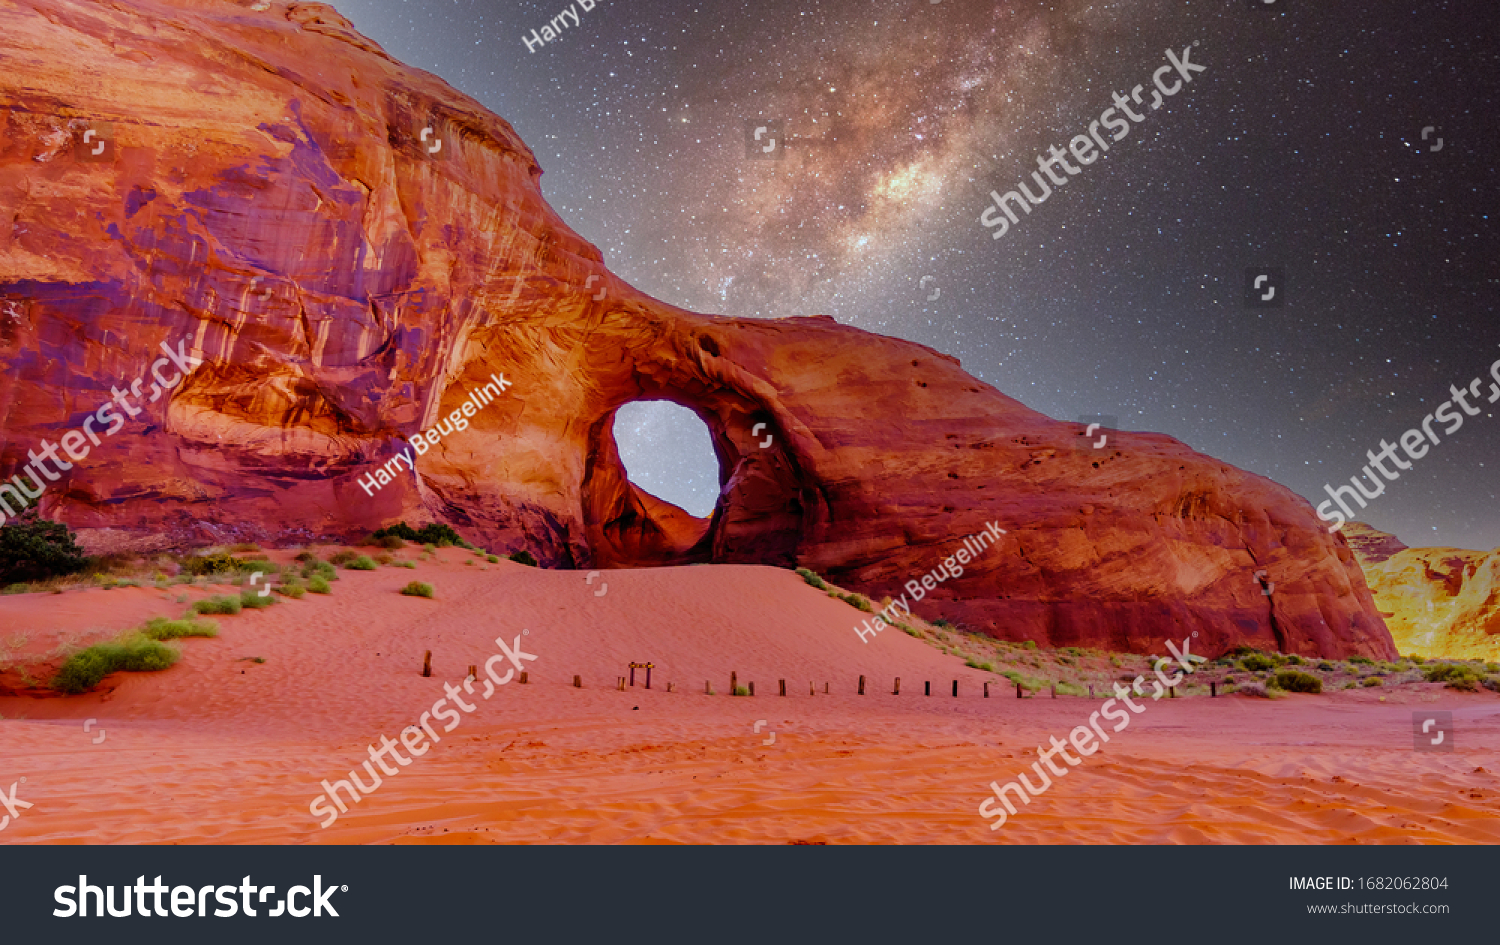 Starry Sky behind the Ear of The Wind, a hole in a rock formation in Monument Valley Navajo Tribal Park on the border of Utah and Arizona, United States #1682062804